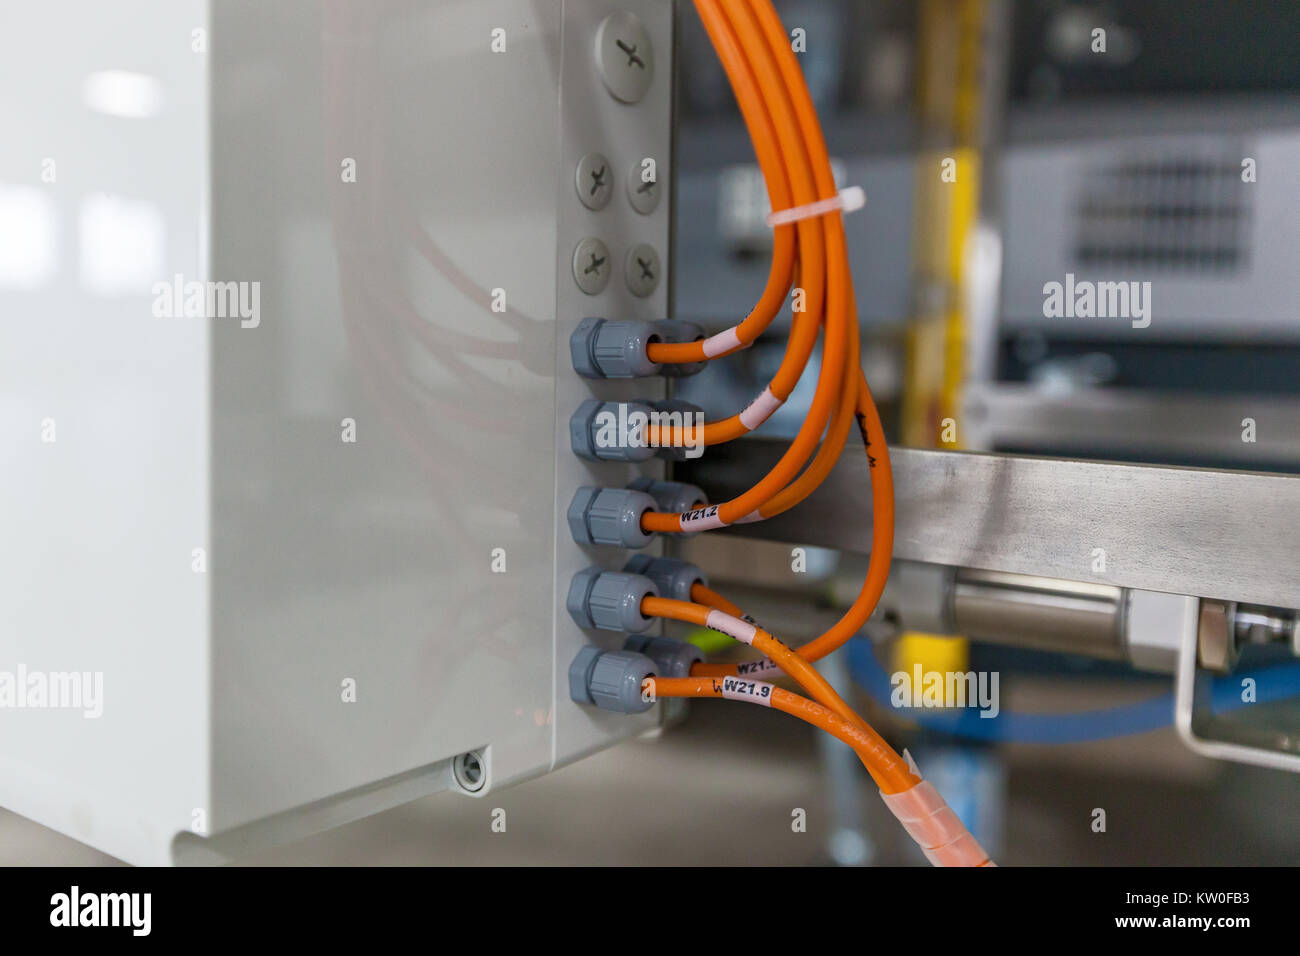 Electrical Junction Stock Photos Images New Construction Electric Wiring Harry Electrician Box With Cable Grand Connection Image